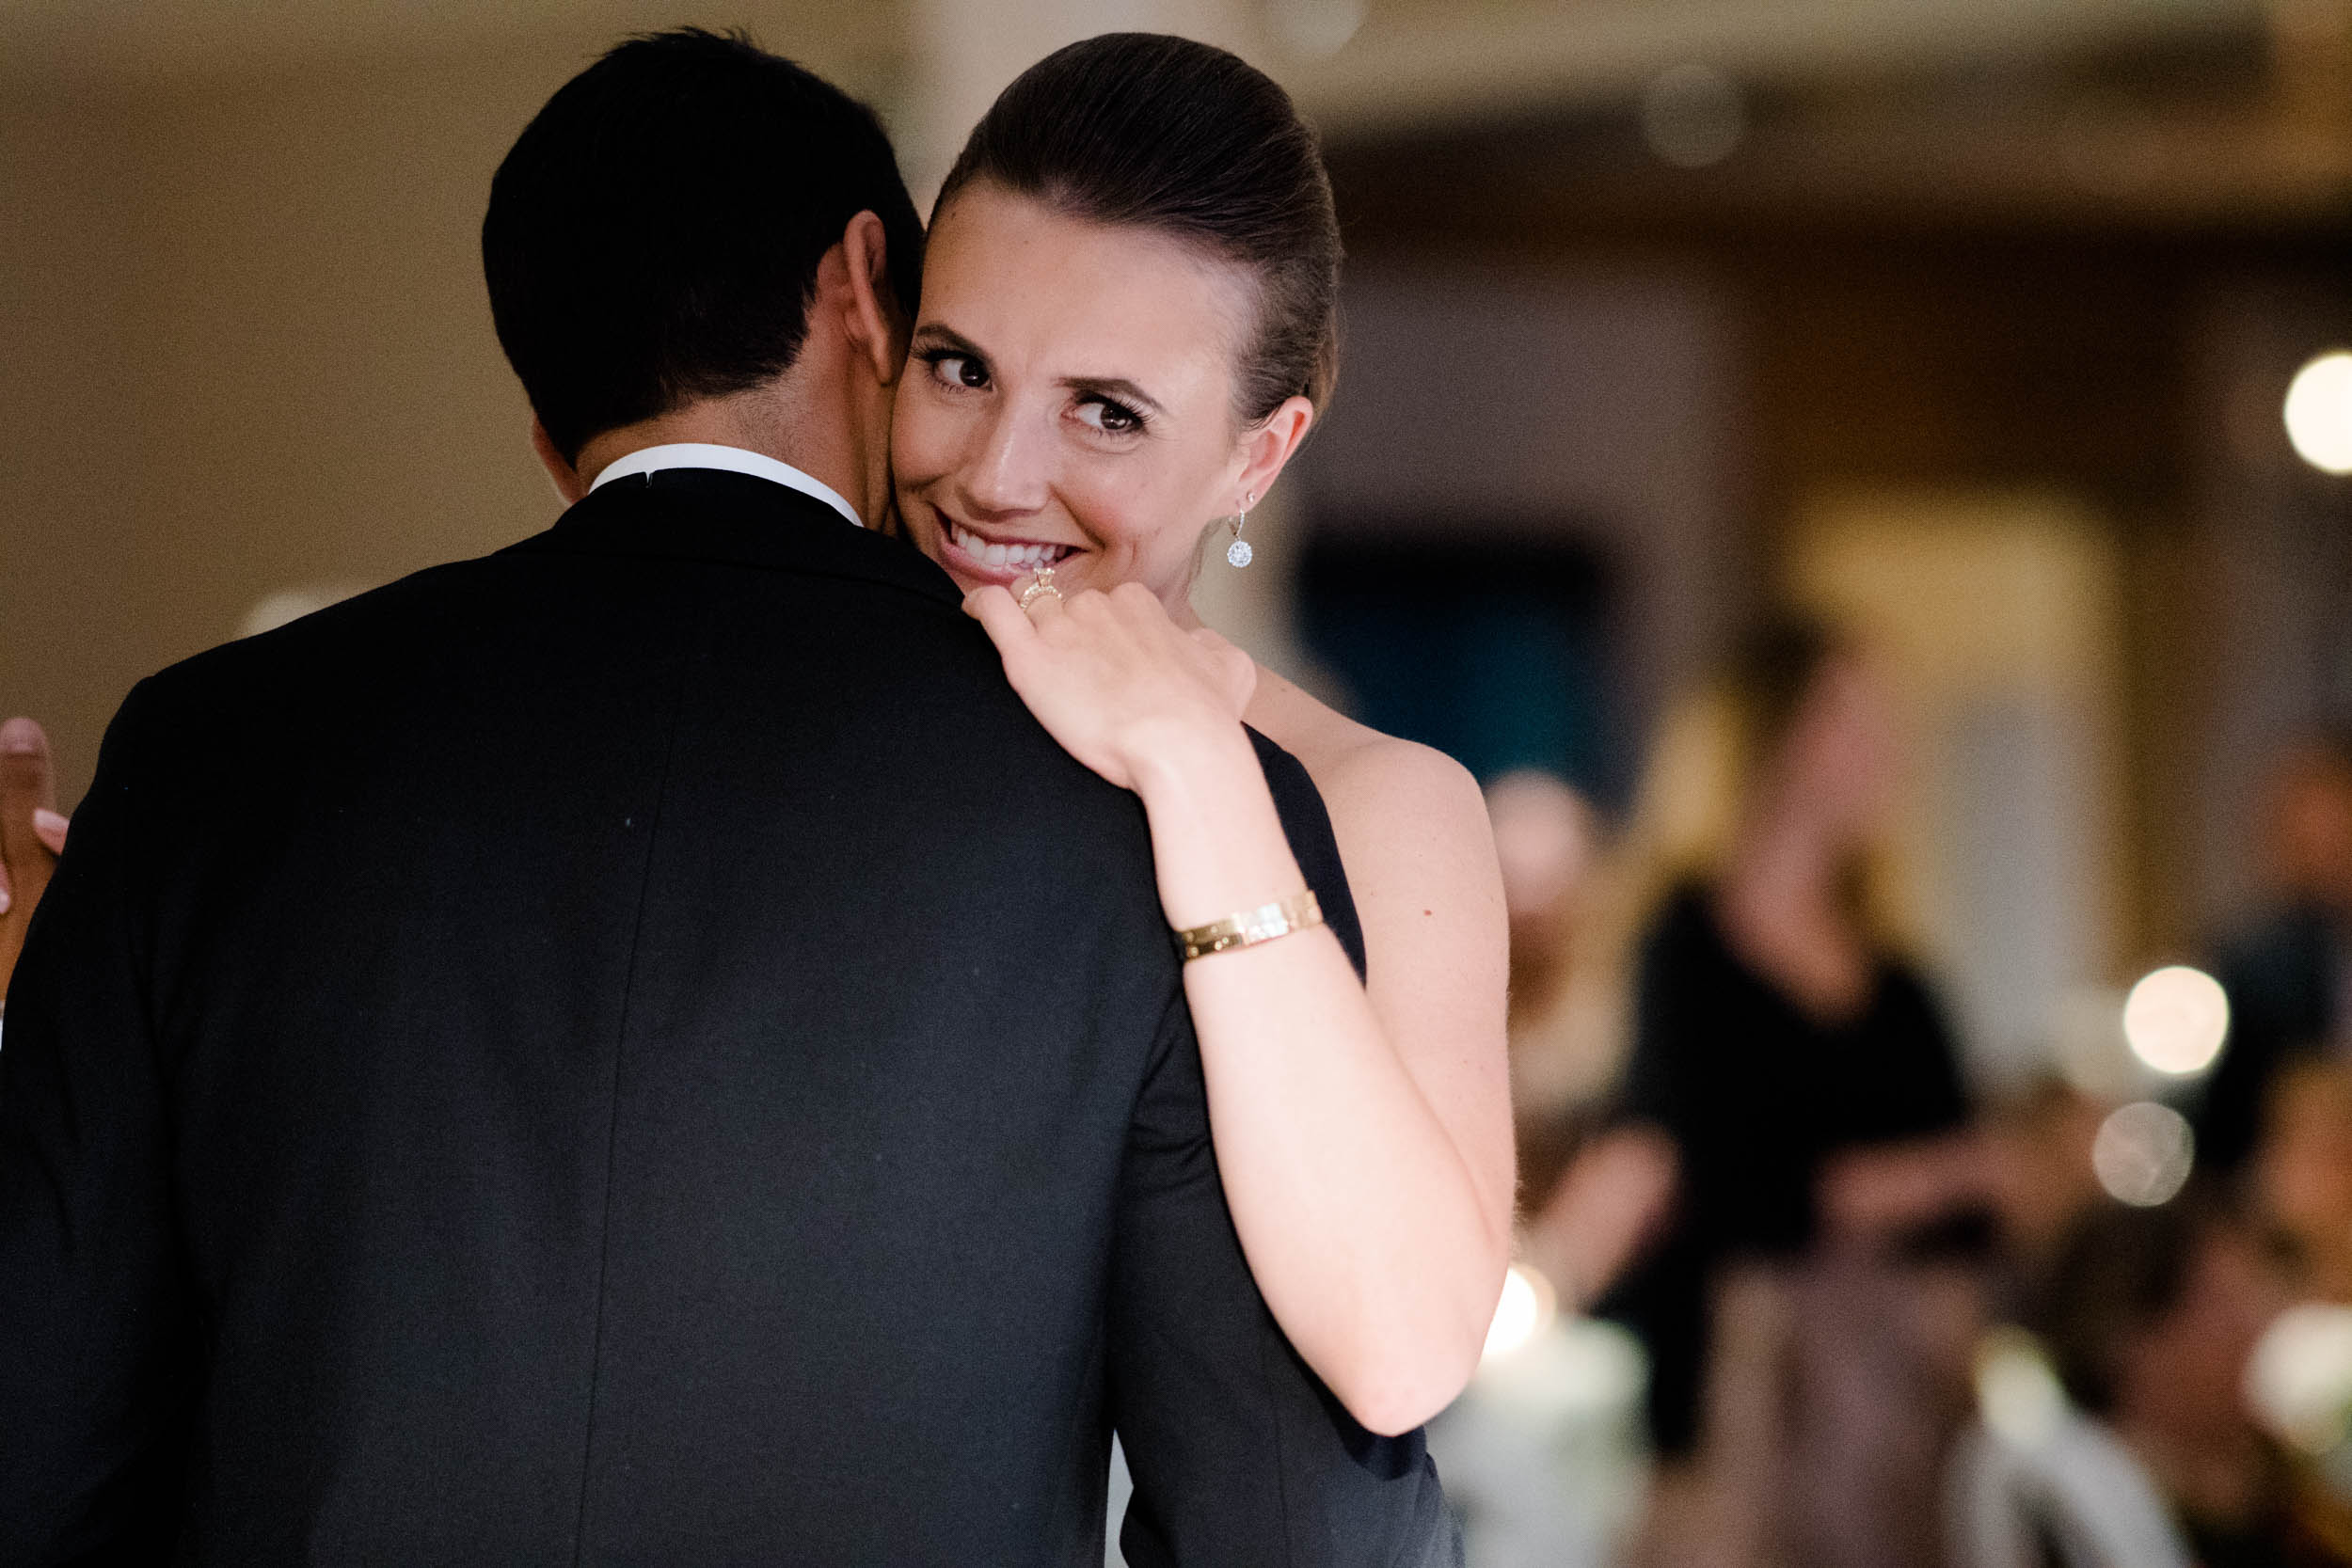 Candid photo of the bride and groom during their first dance in Charleston, South Carolina.